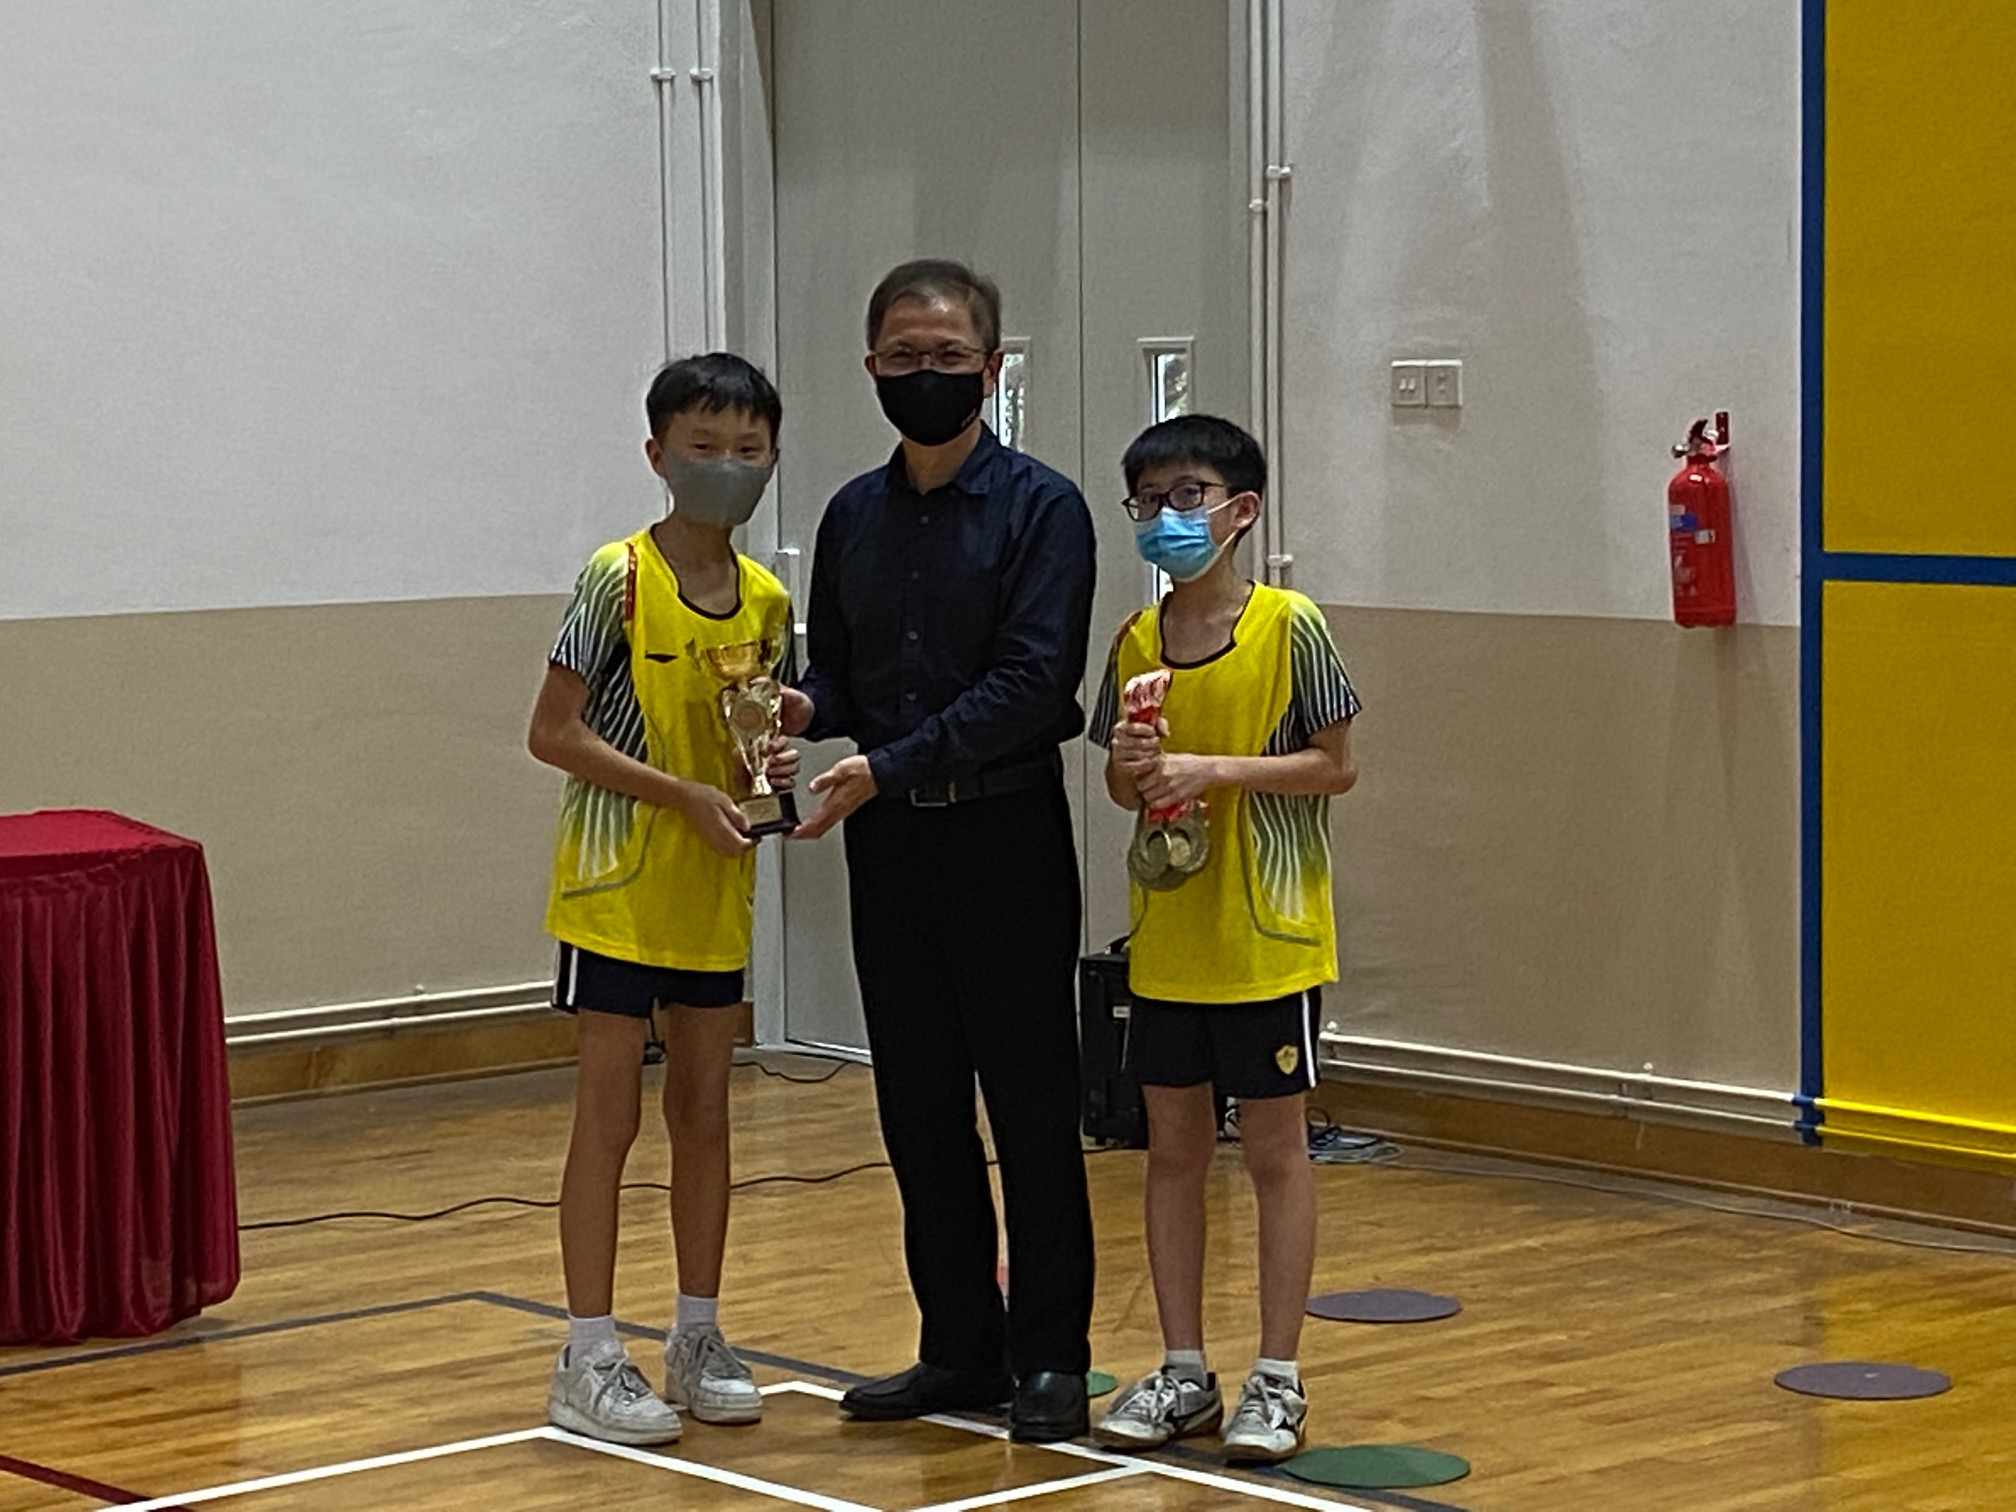 NSG East Zone Snr Div boys table tennis final - prize presentation